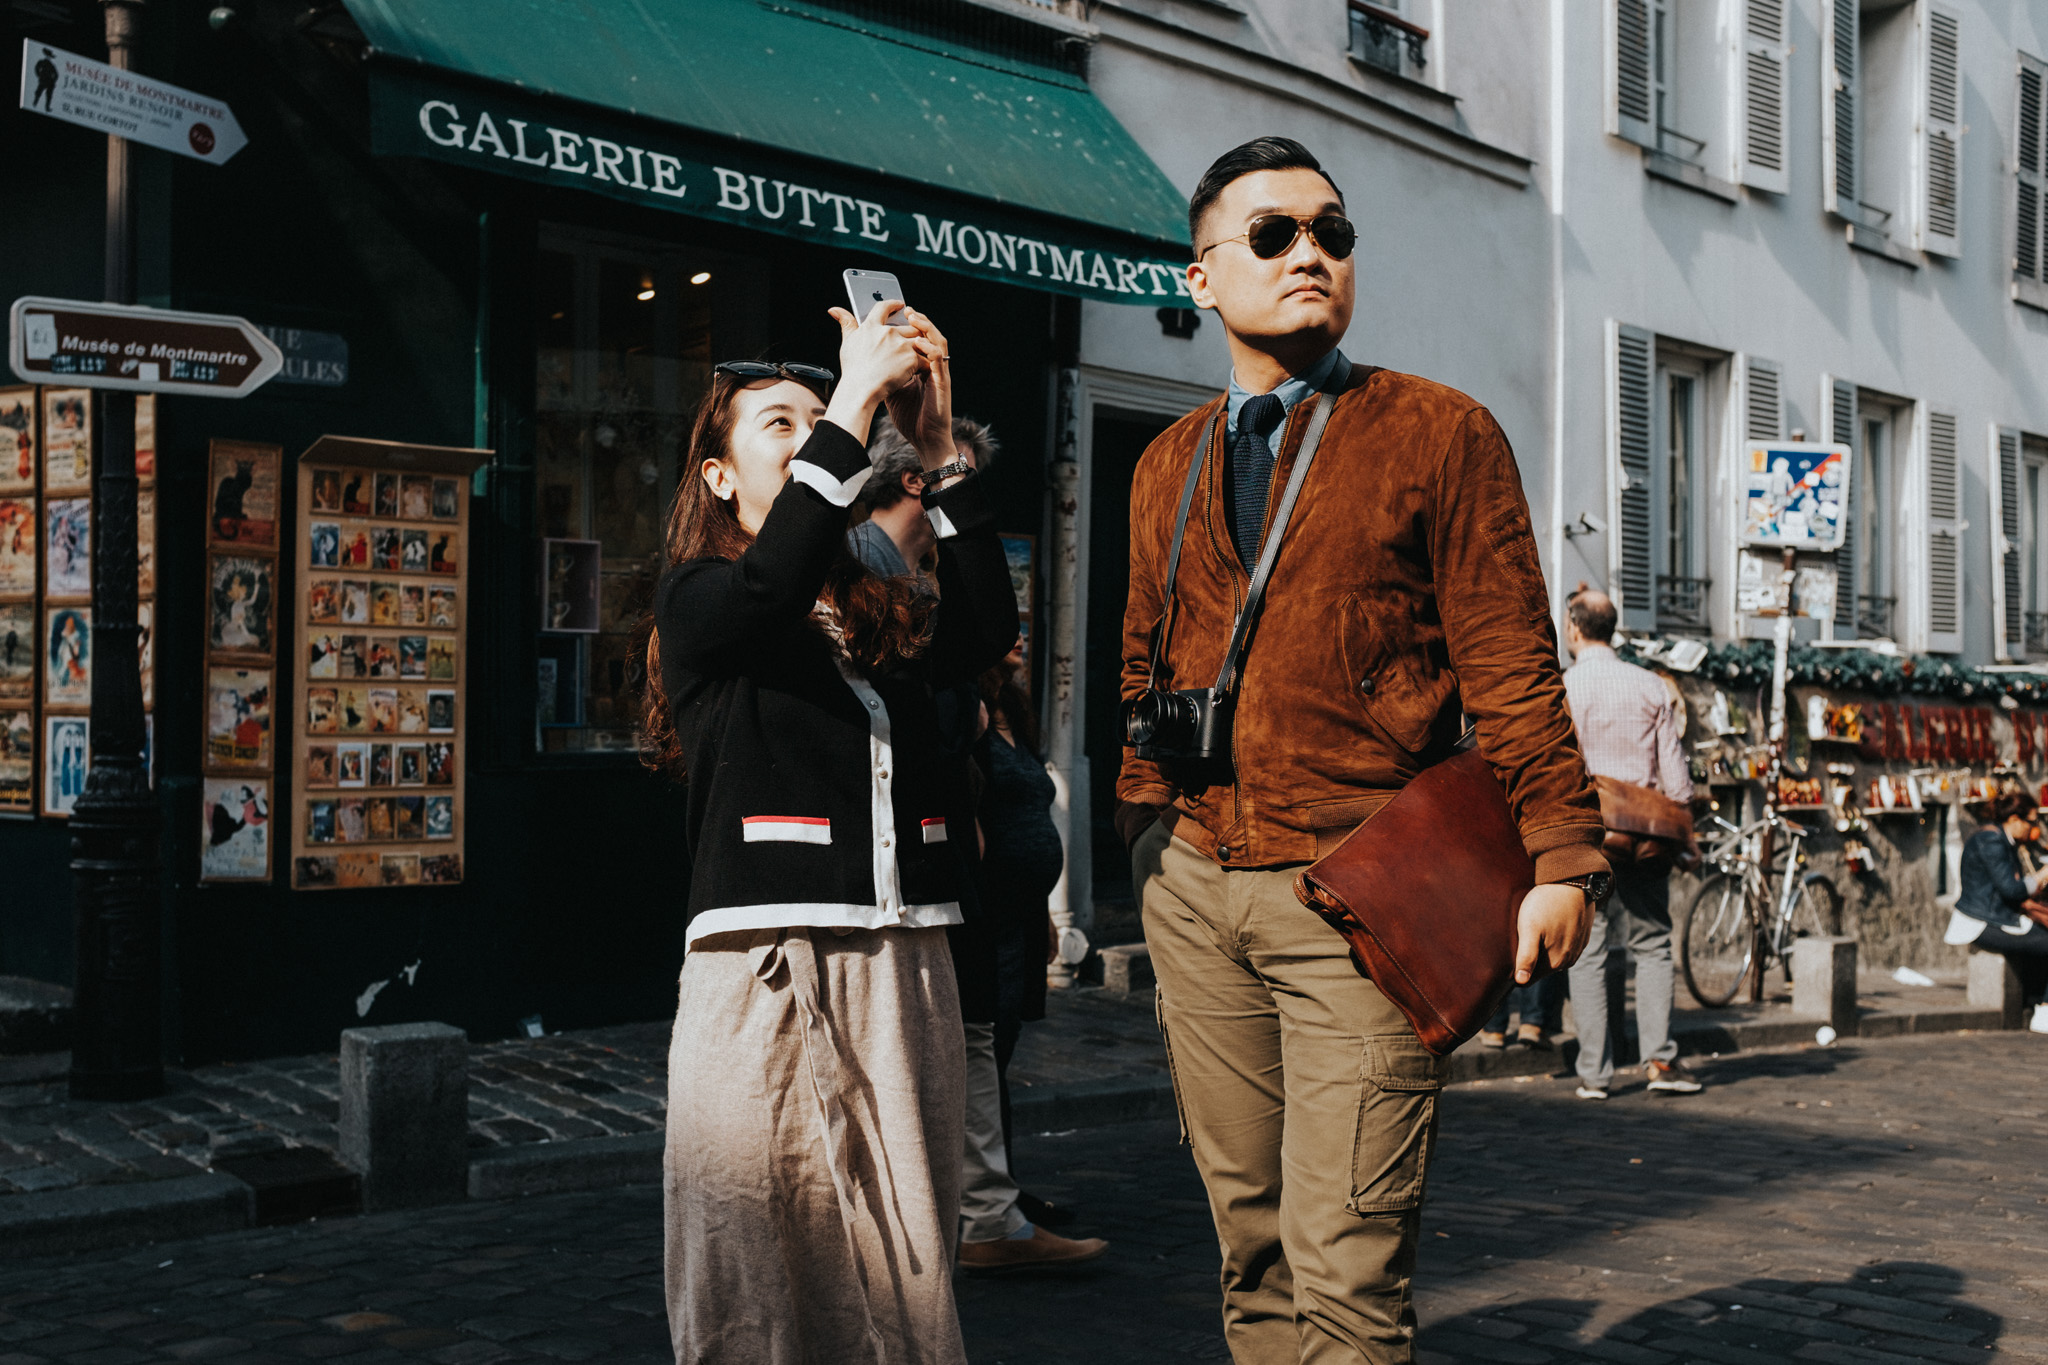 A day in Montmarte - 100 Street Photos from Paris' 18th District